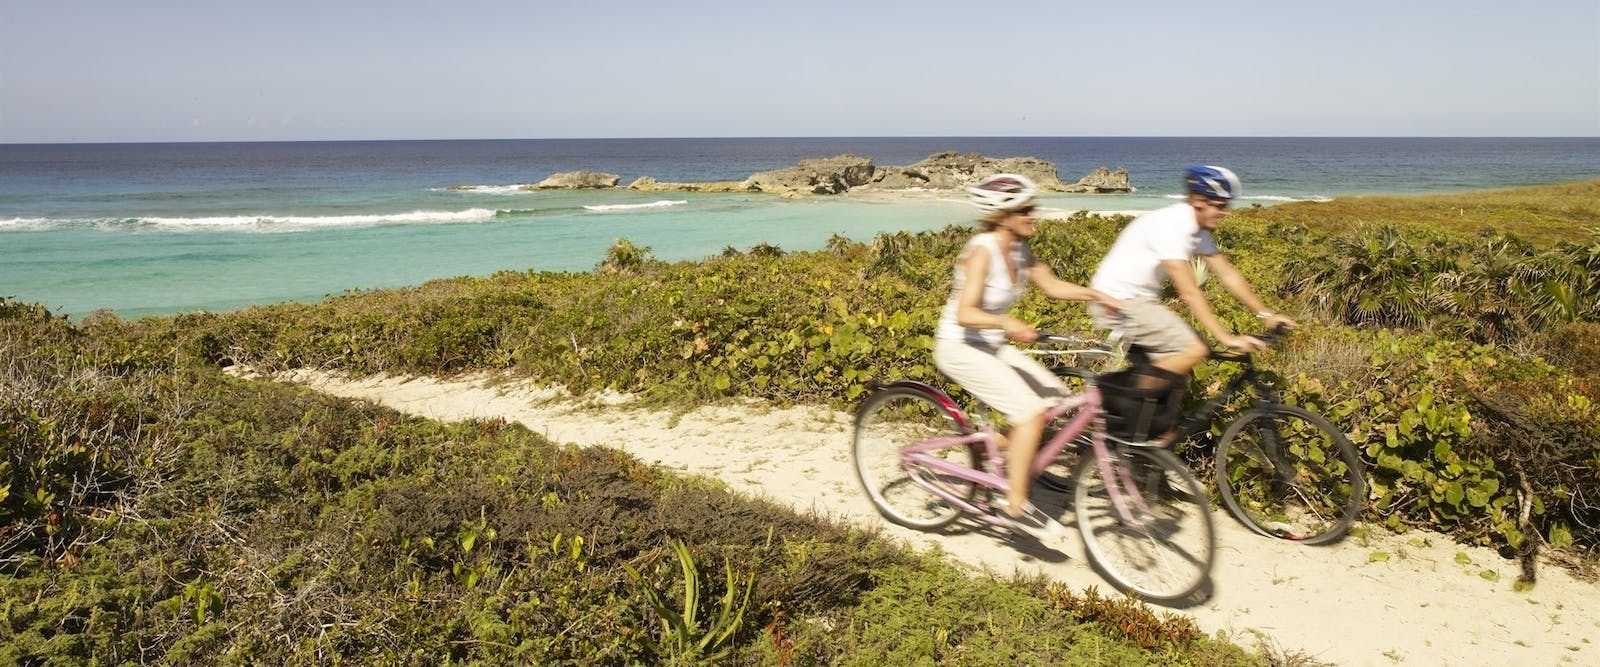 Cycling on the island at COMO Parrot Cay, Turks and Caicos